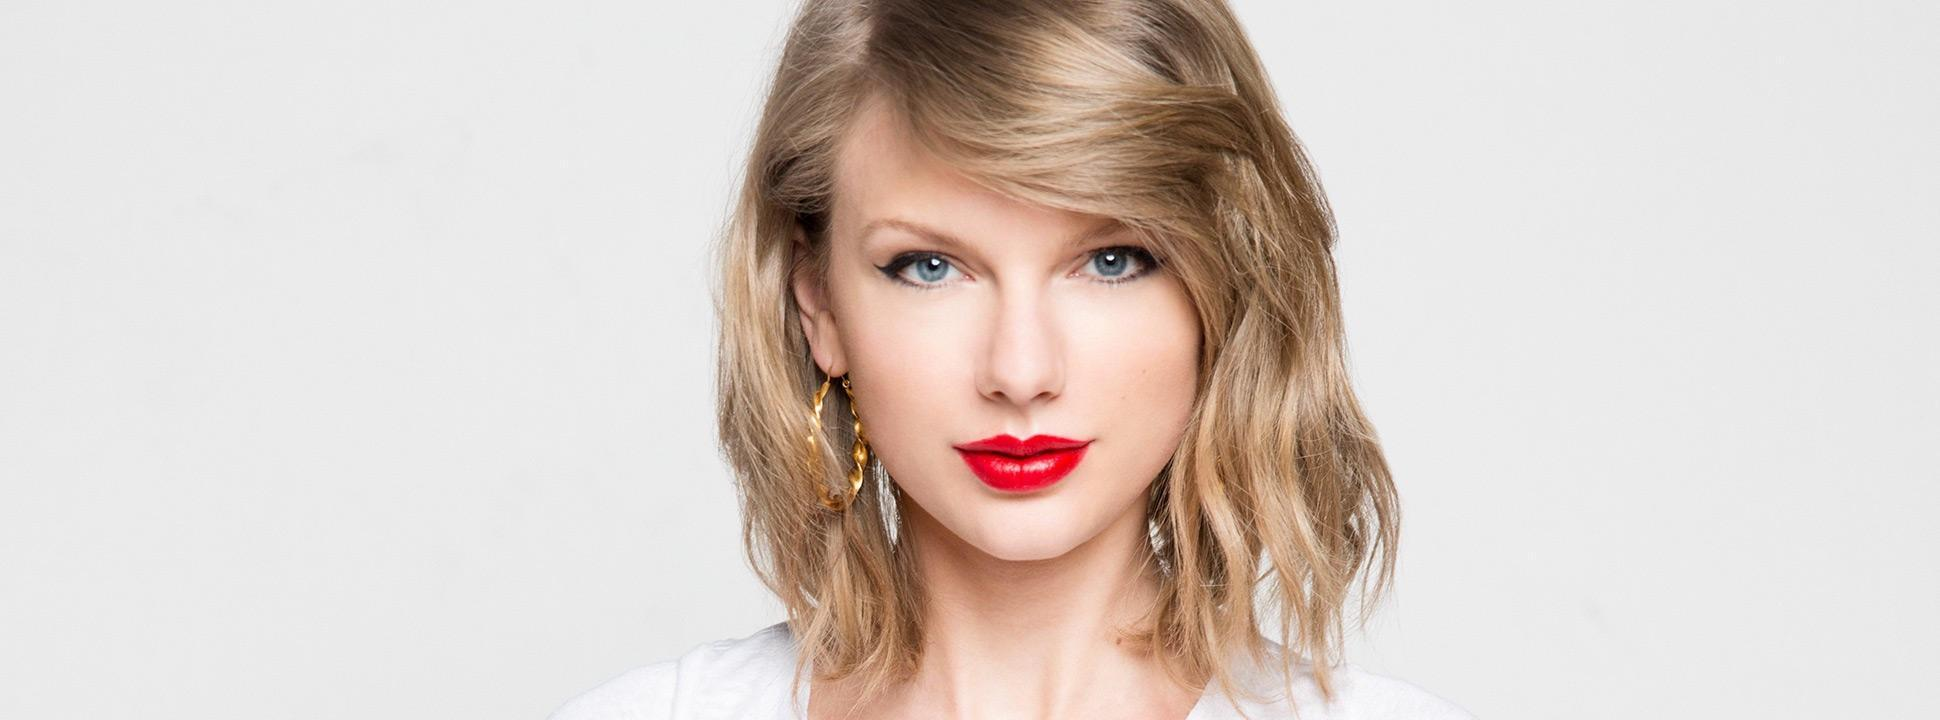 Which taylor swift song is the best?